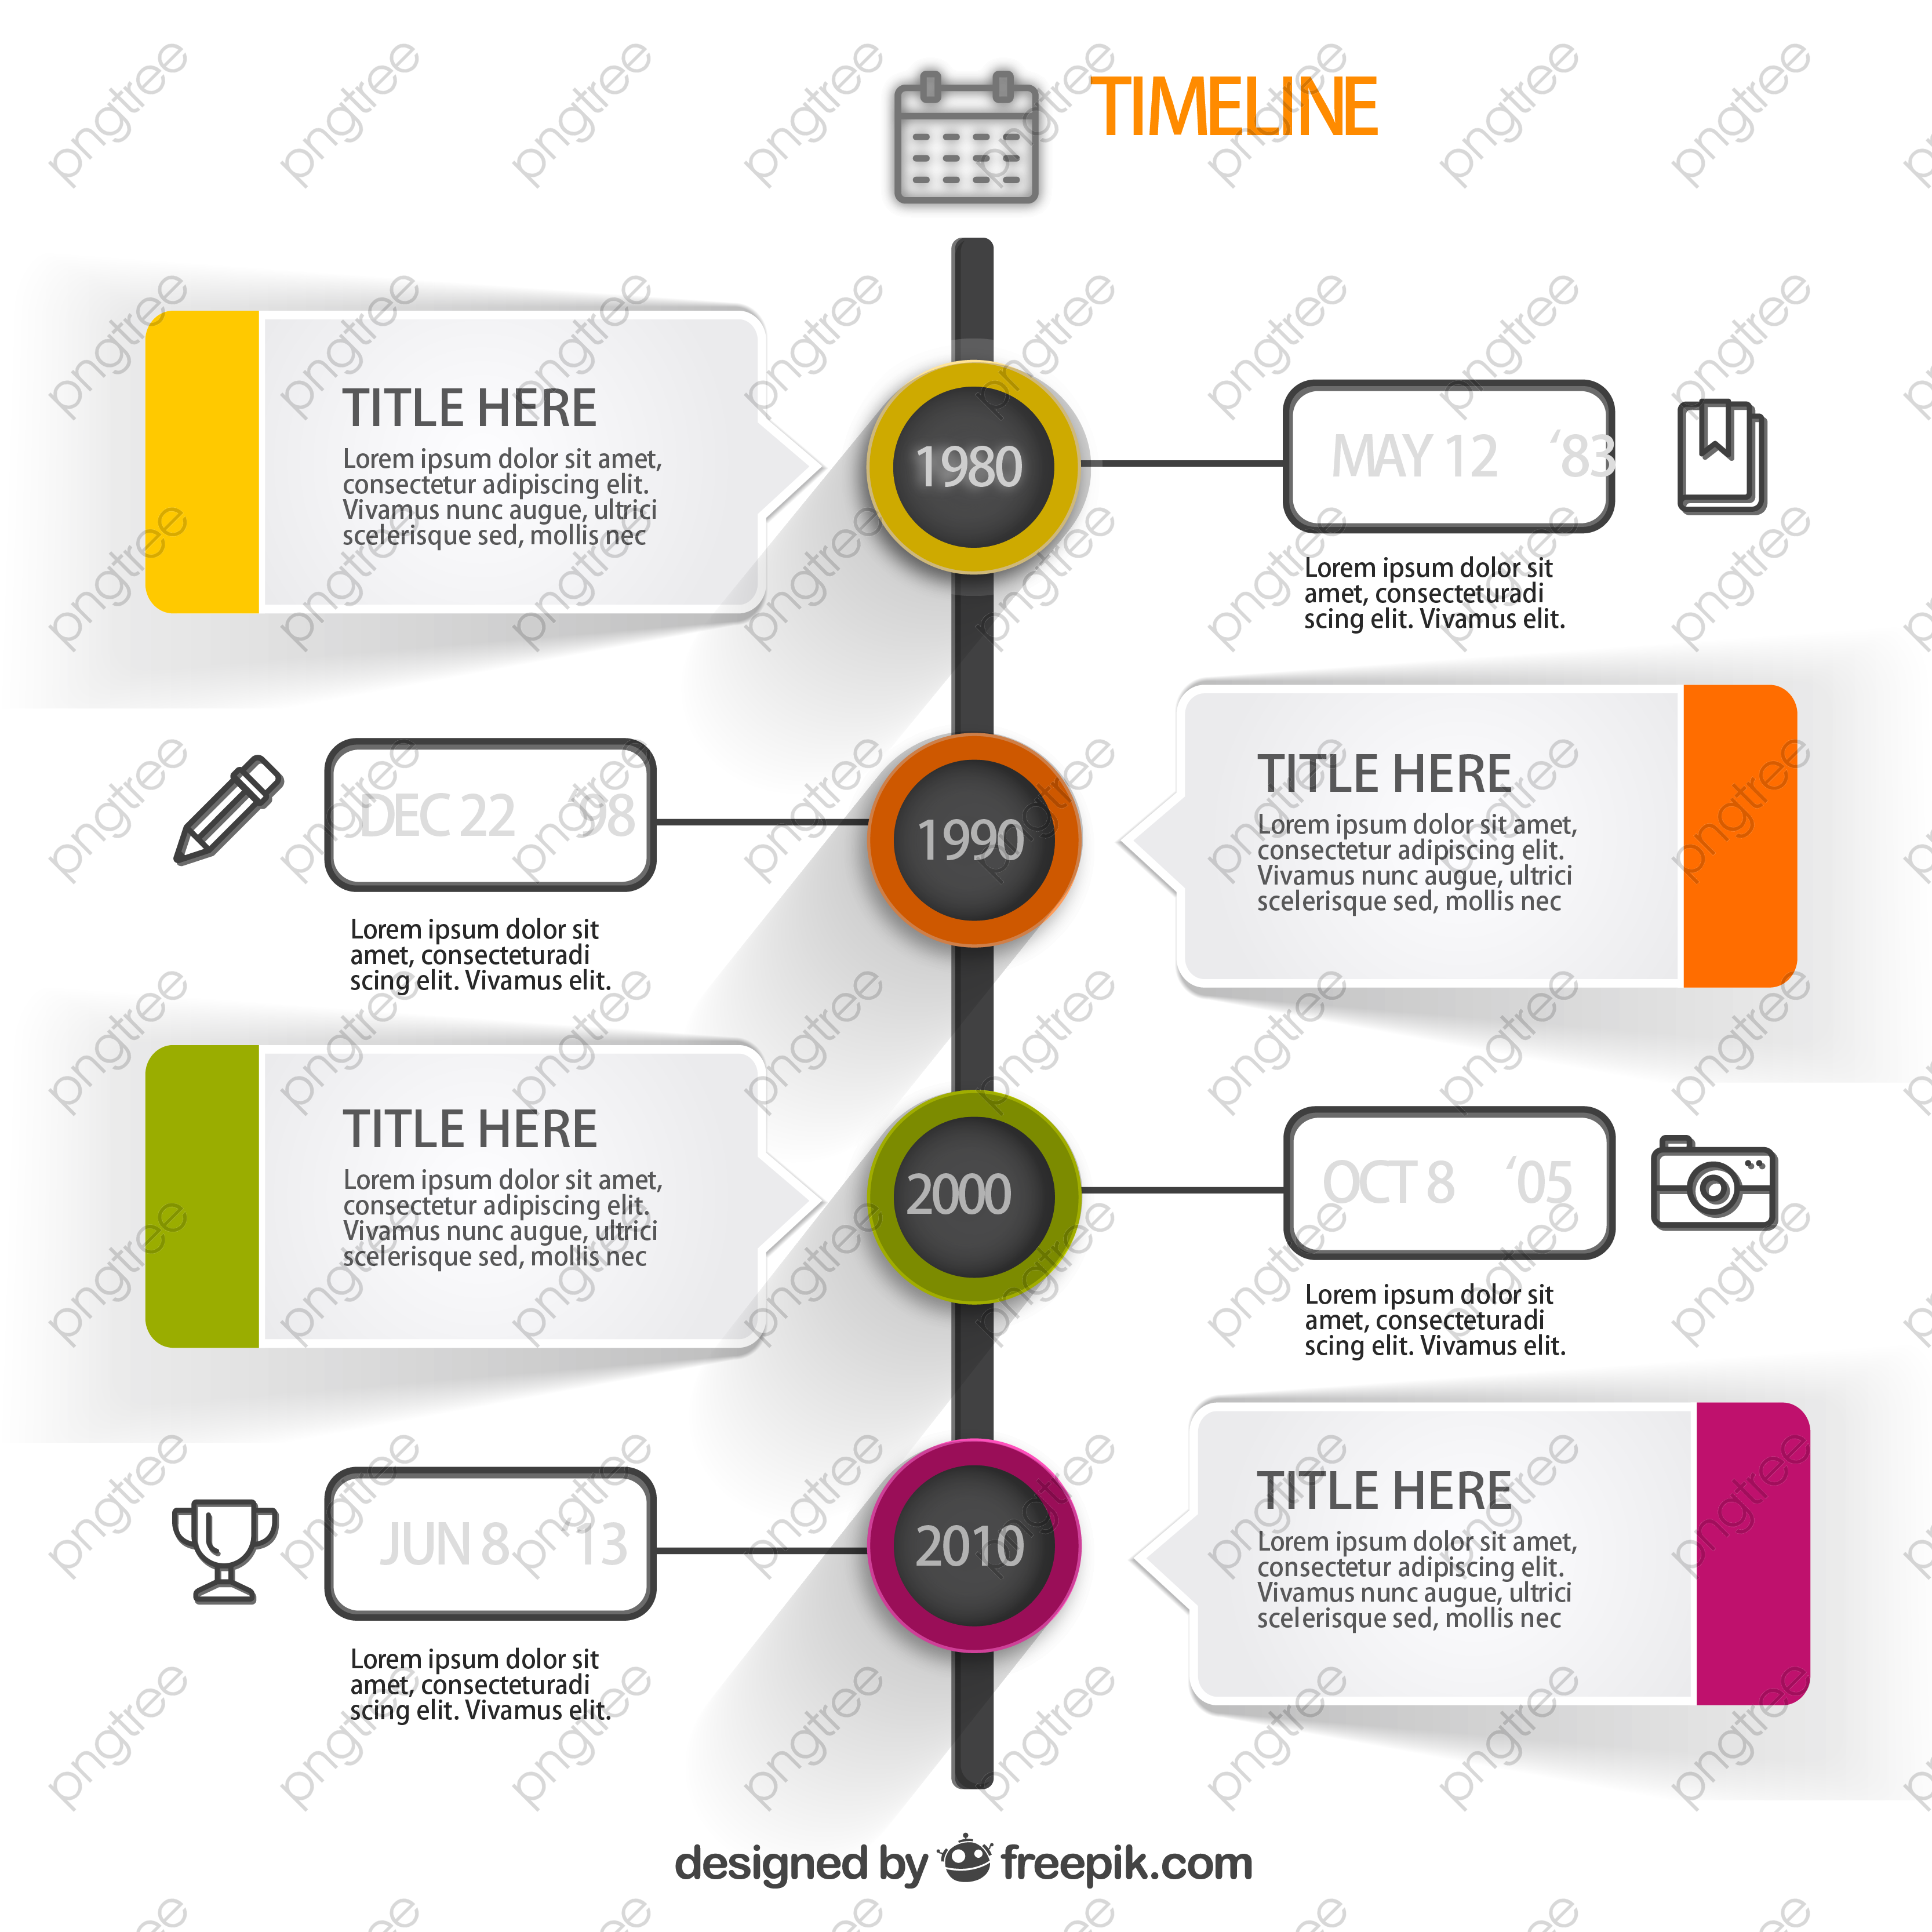 Colorful Timeline Chart Free Png Clipart